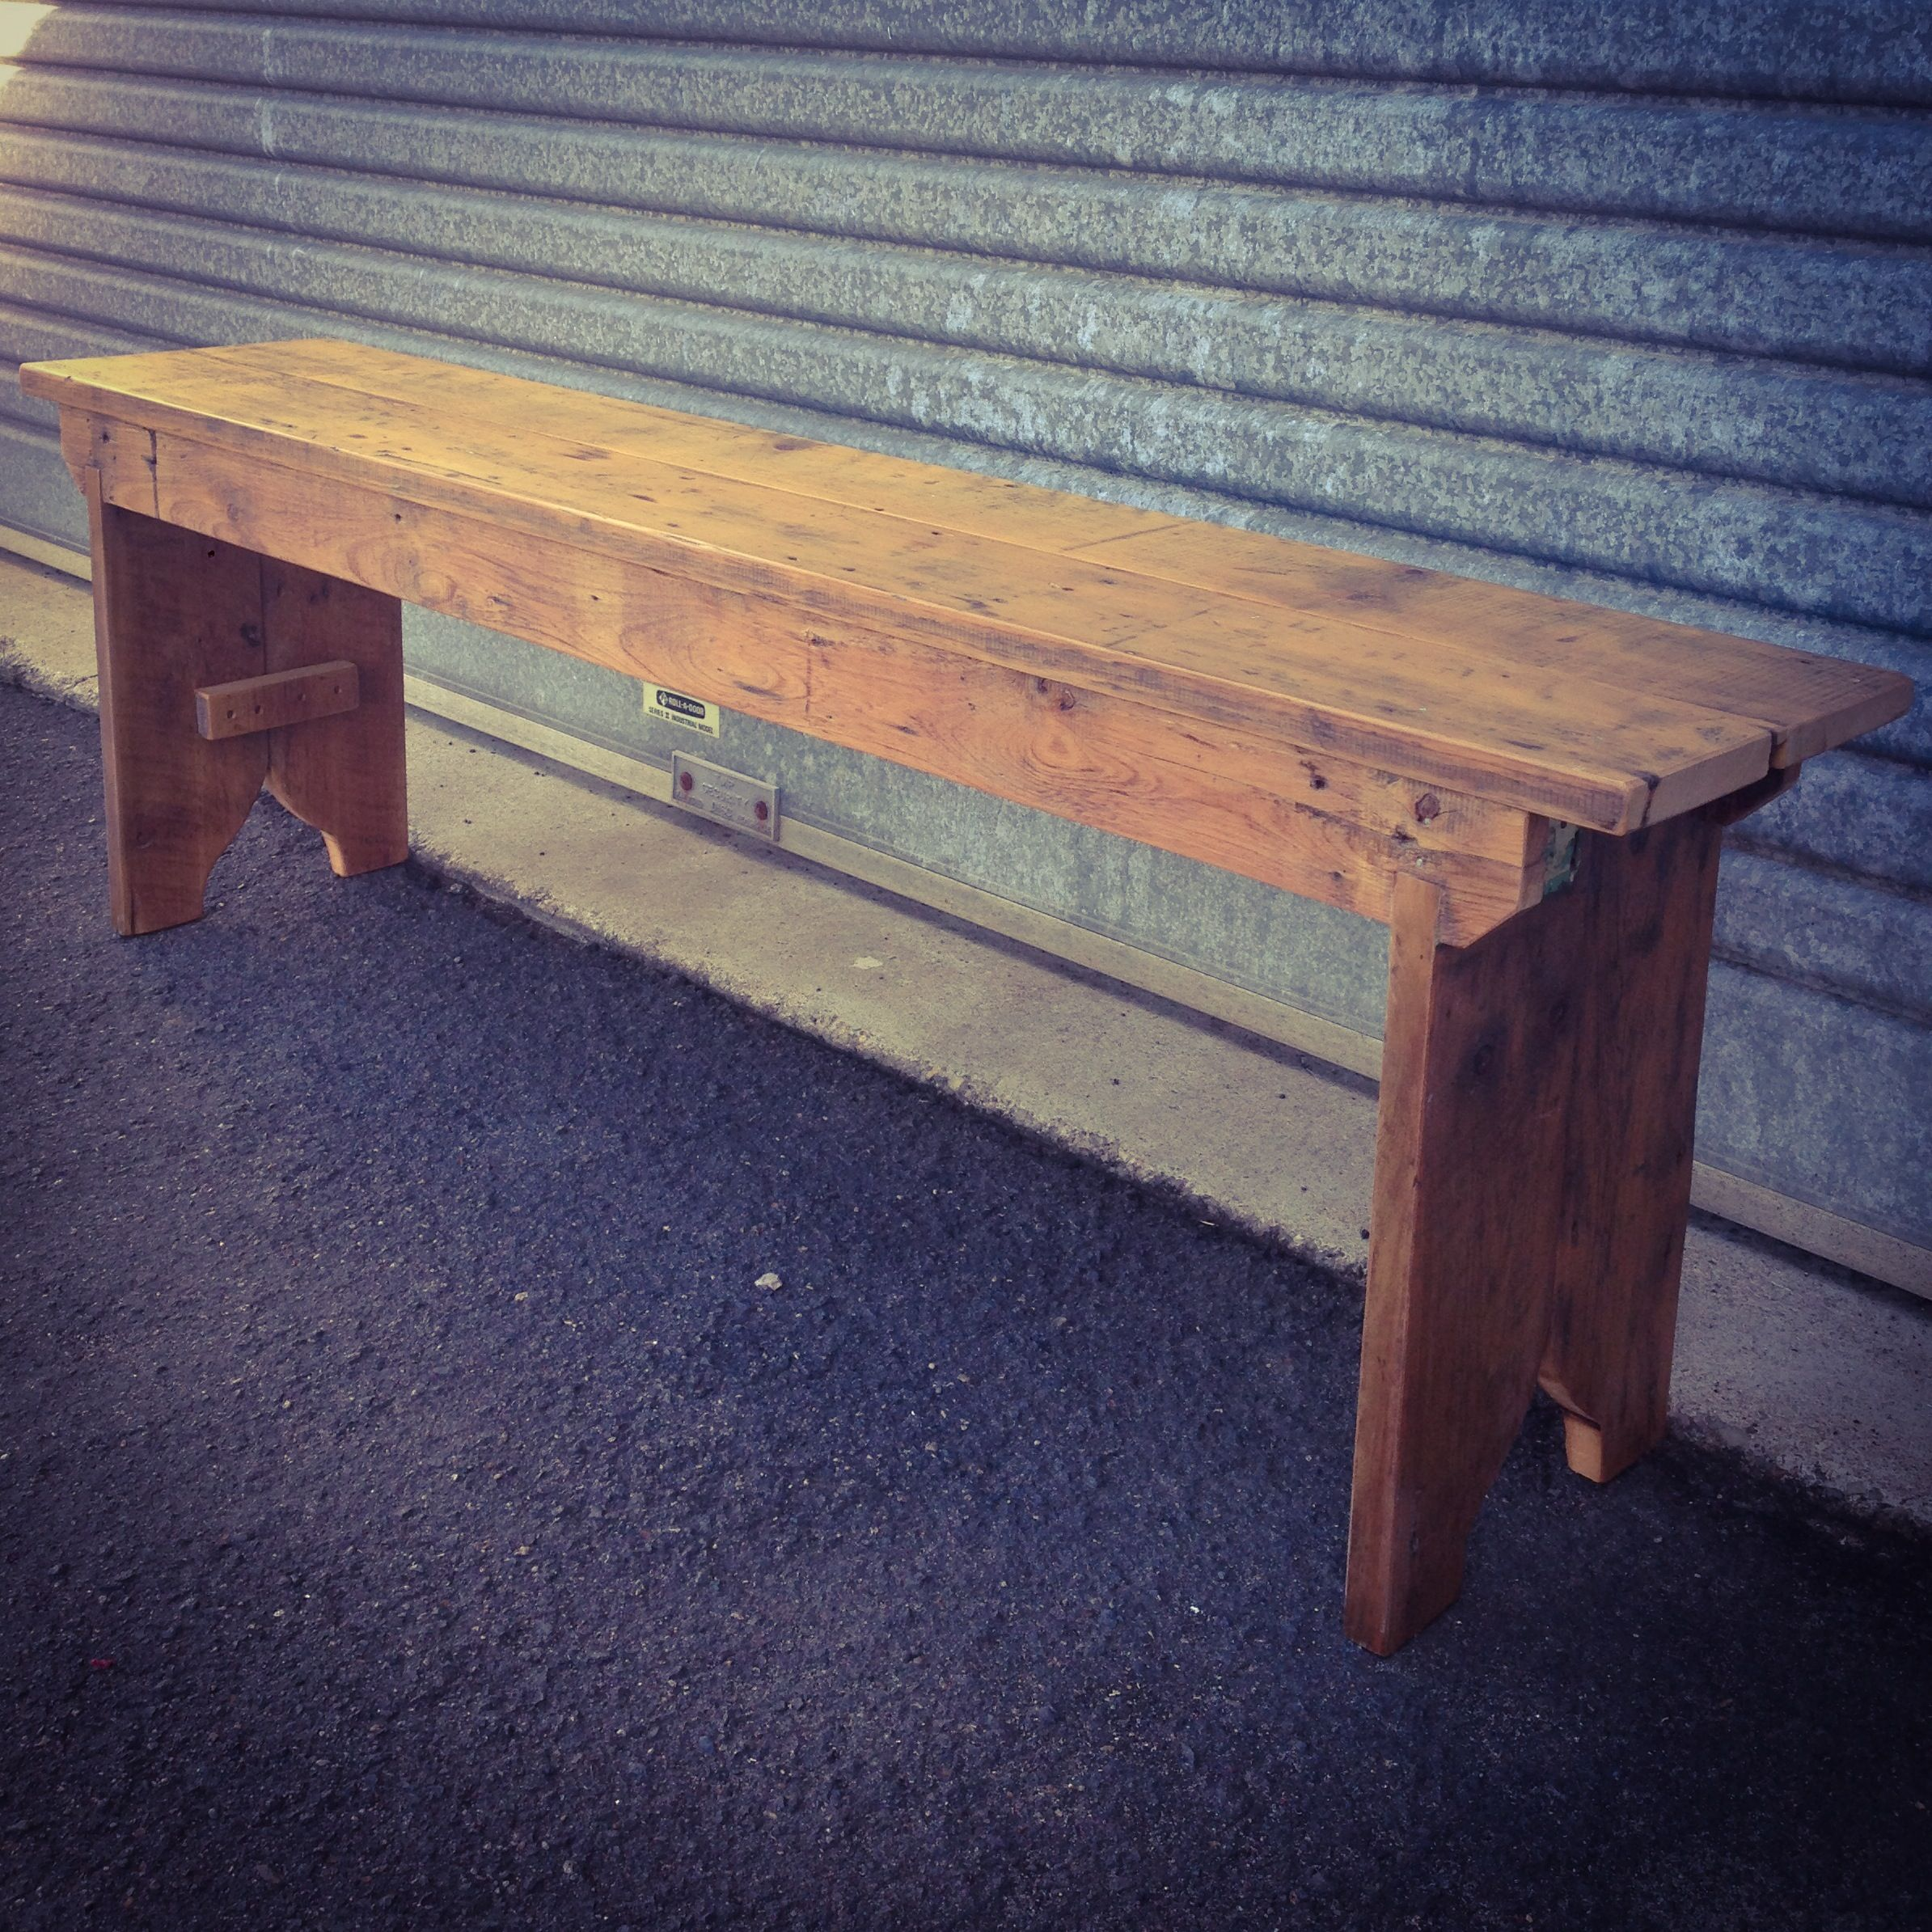 recycled timber bench seat patio tablebench seatgarden furniturepallet